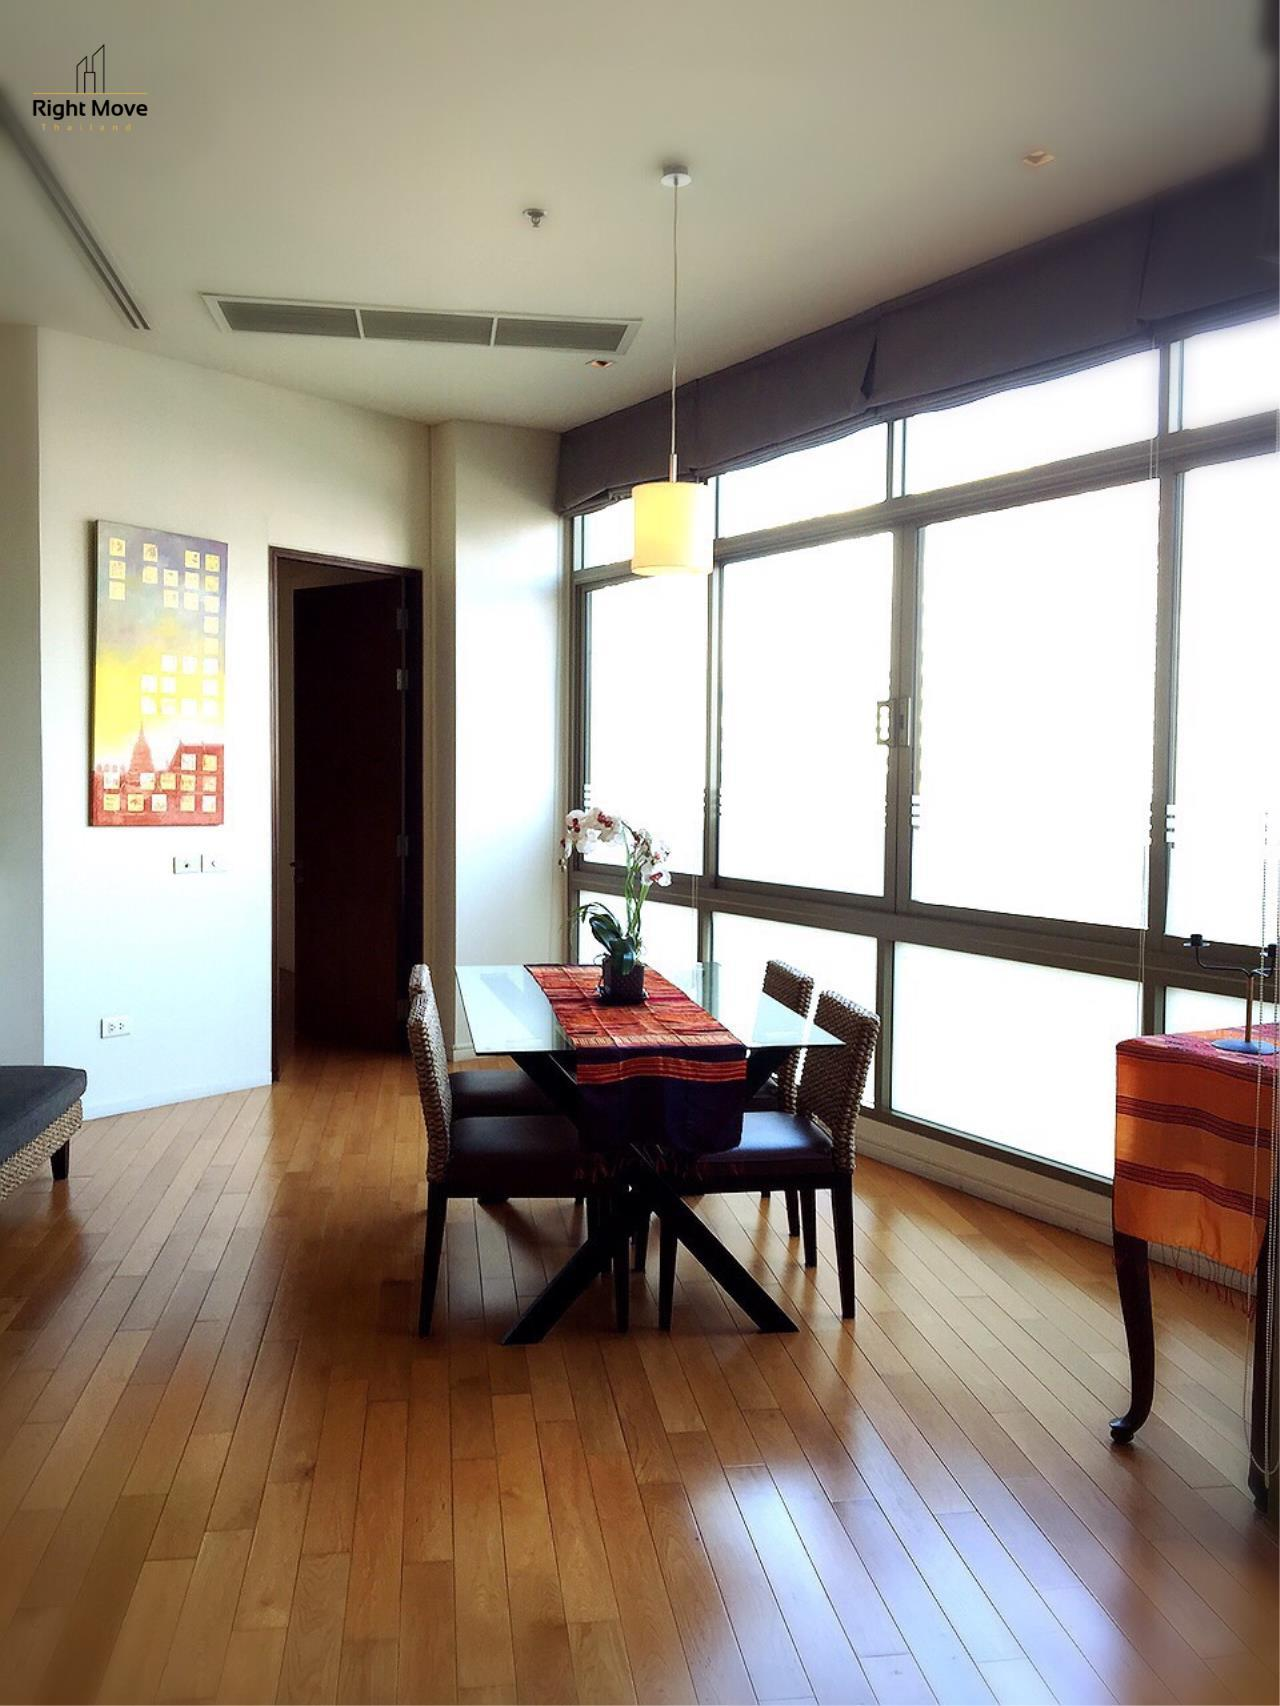 Right Move Thailand Agency's CA194 The Lakes For Rent 50,000 THB 2 bedrooms 110 Sqm 3